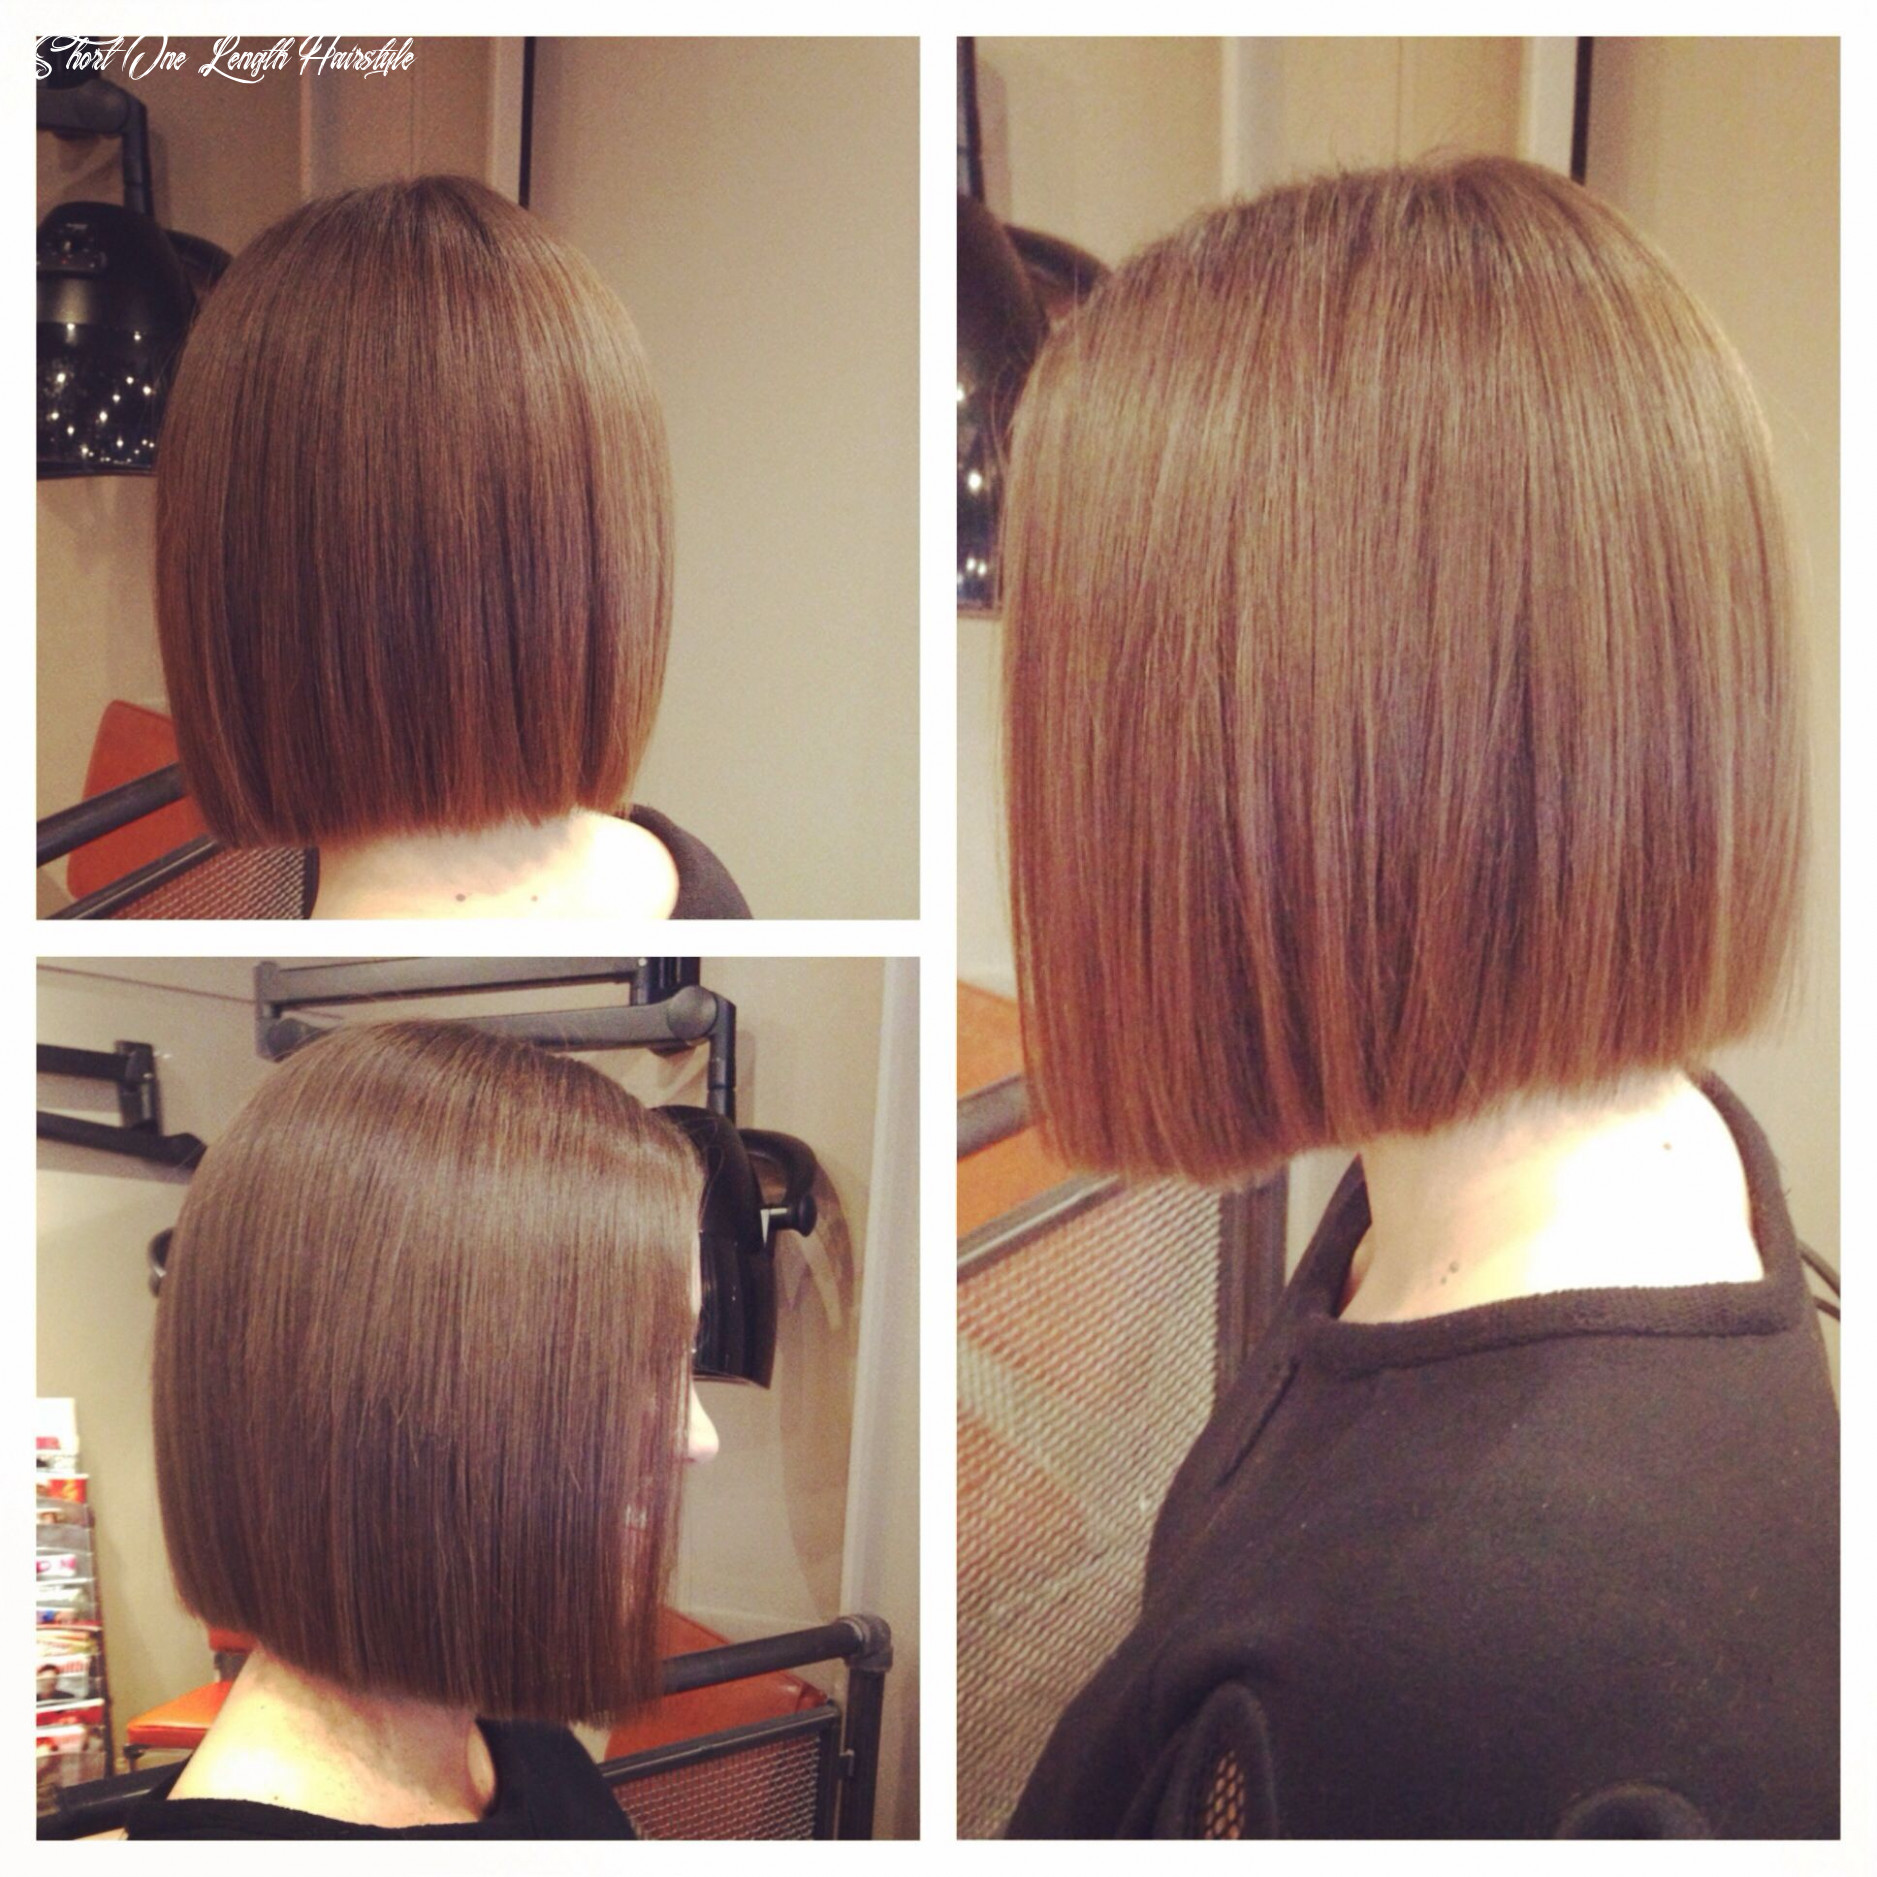 Pin on bob short one length hairstyle